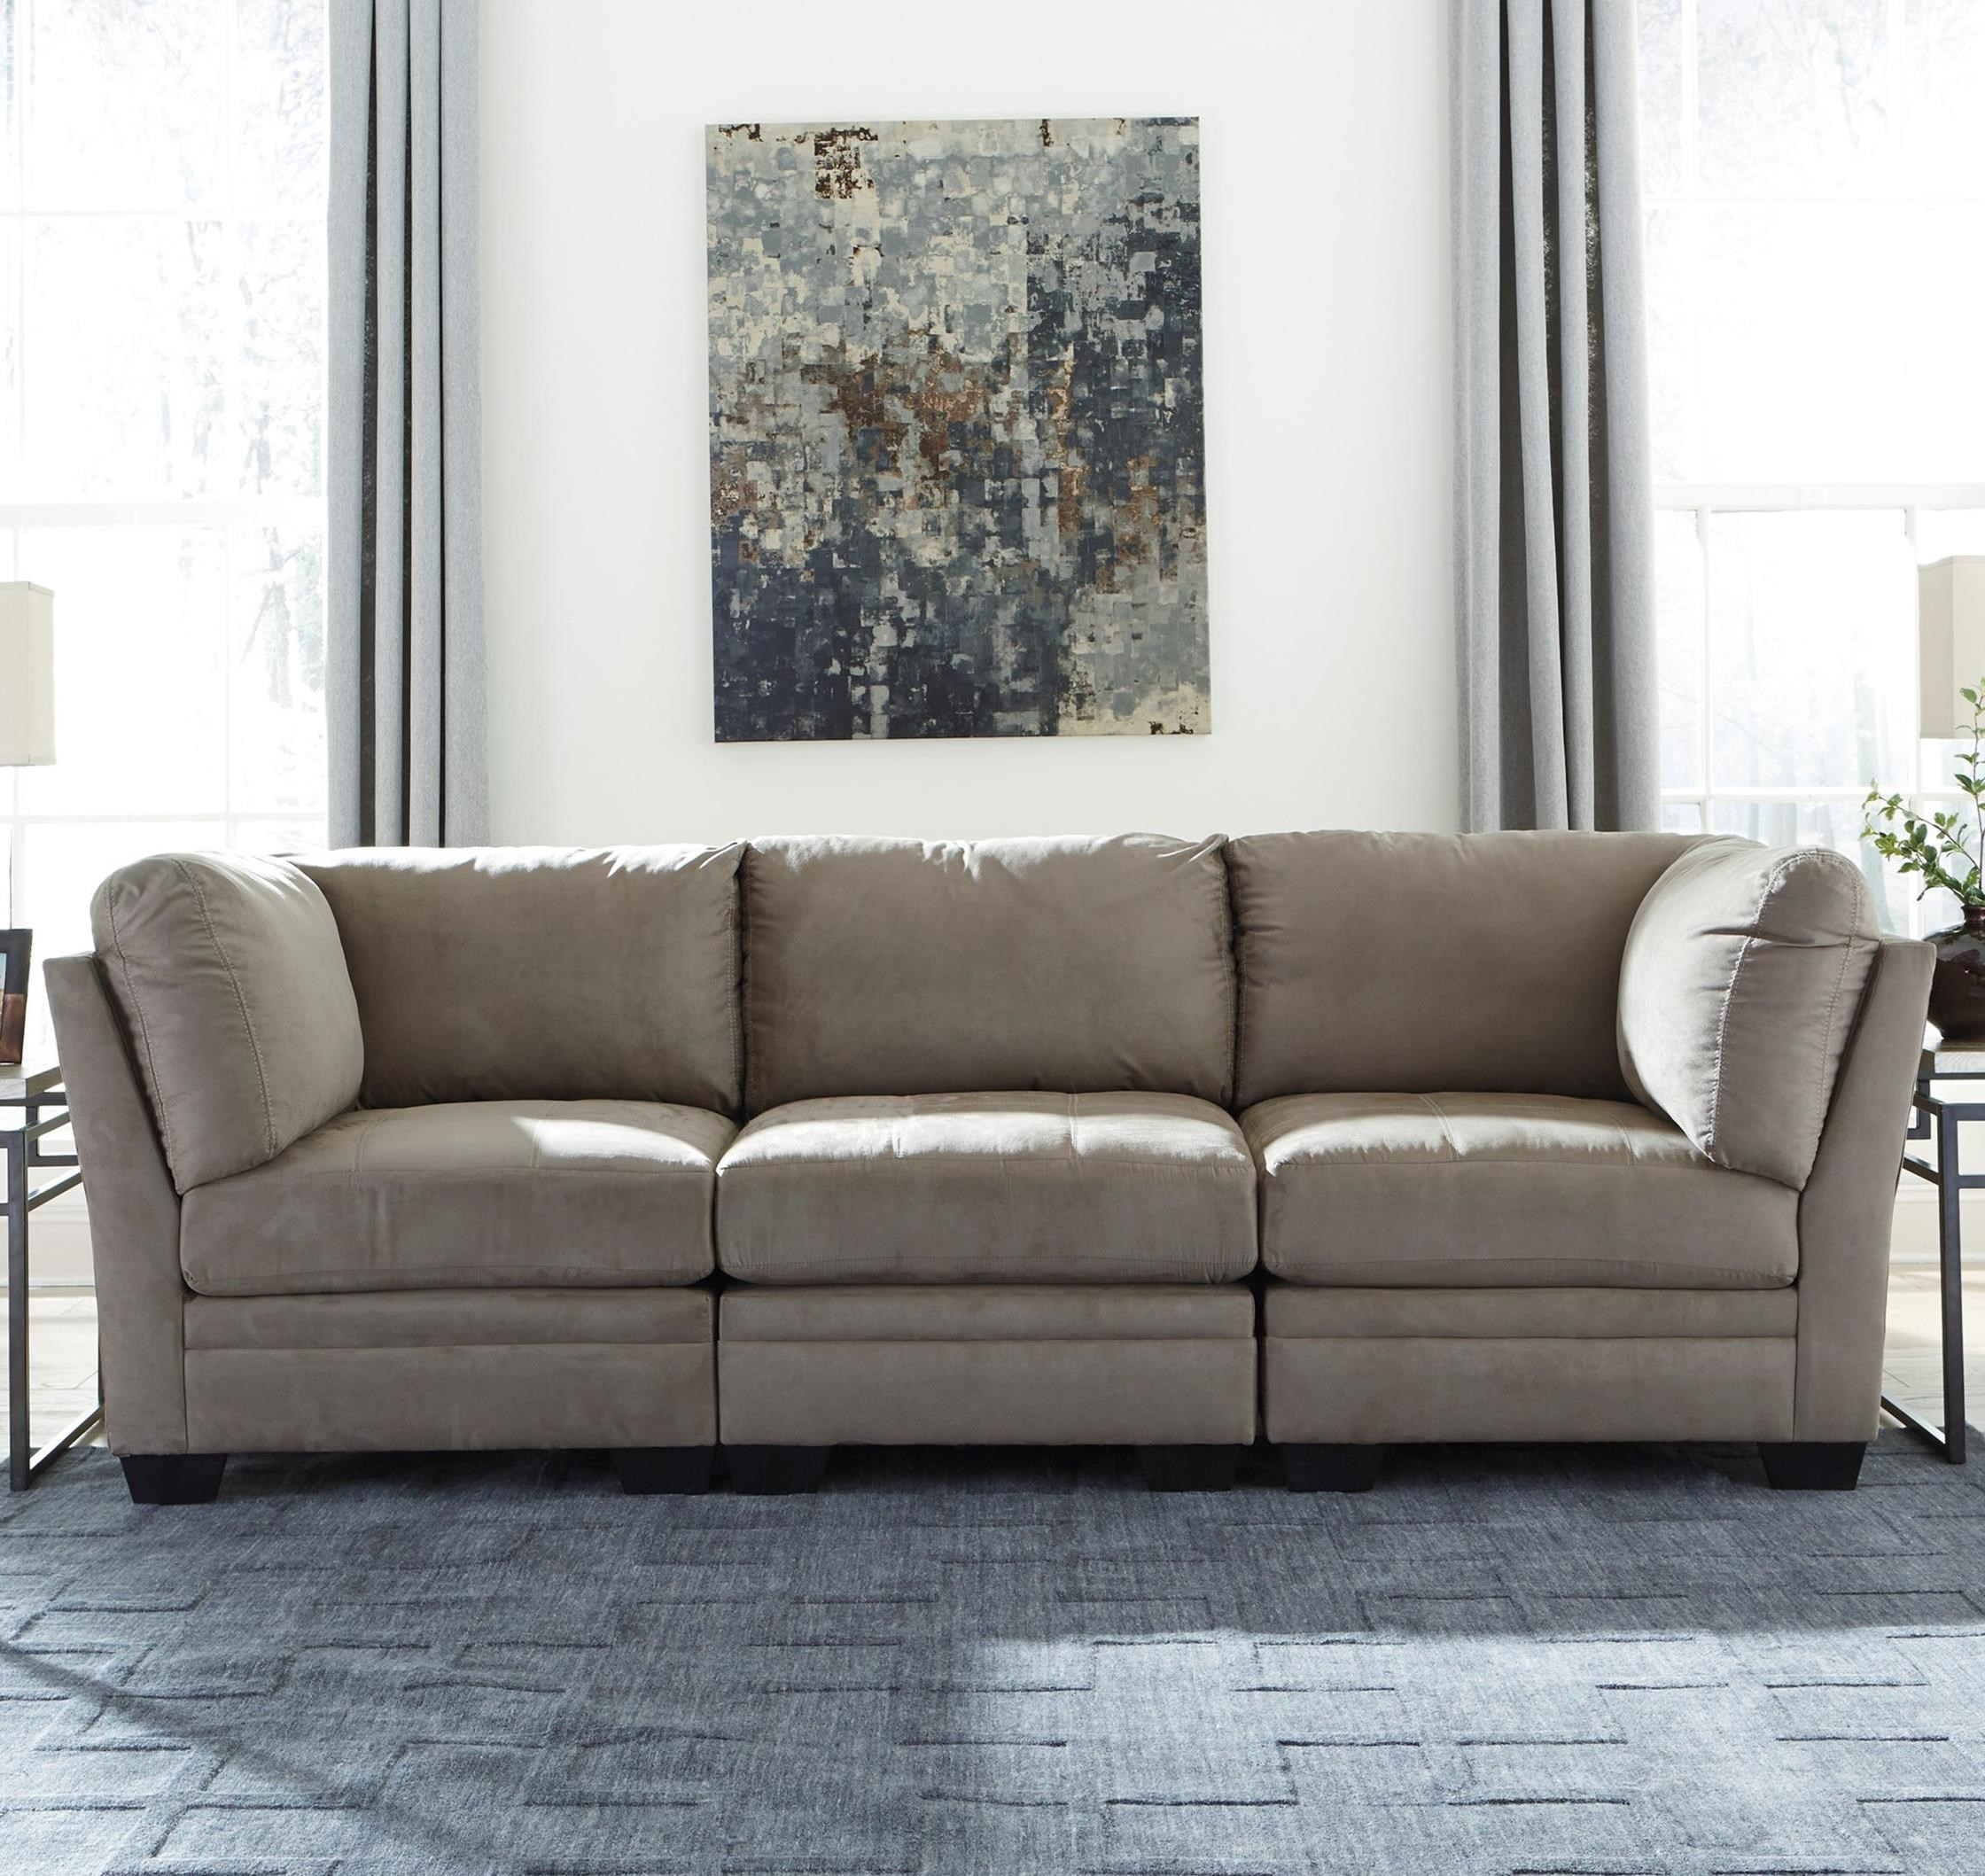 Signature Design by Ashley Iago Modular Sofa - Item Number: 6180346+2x51